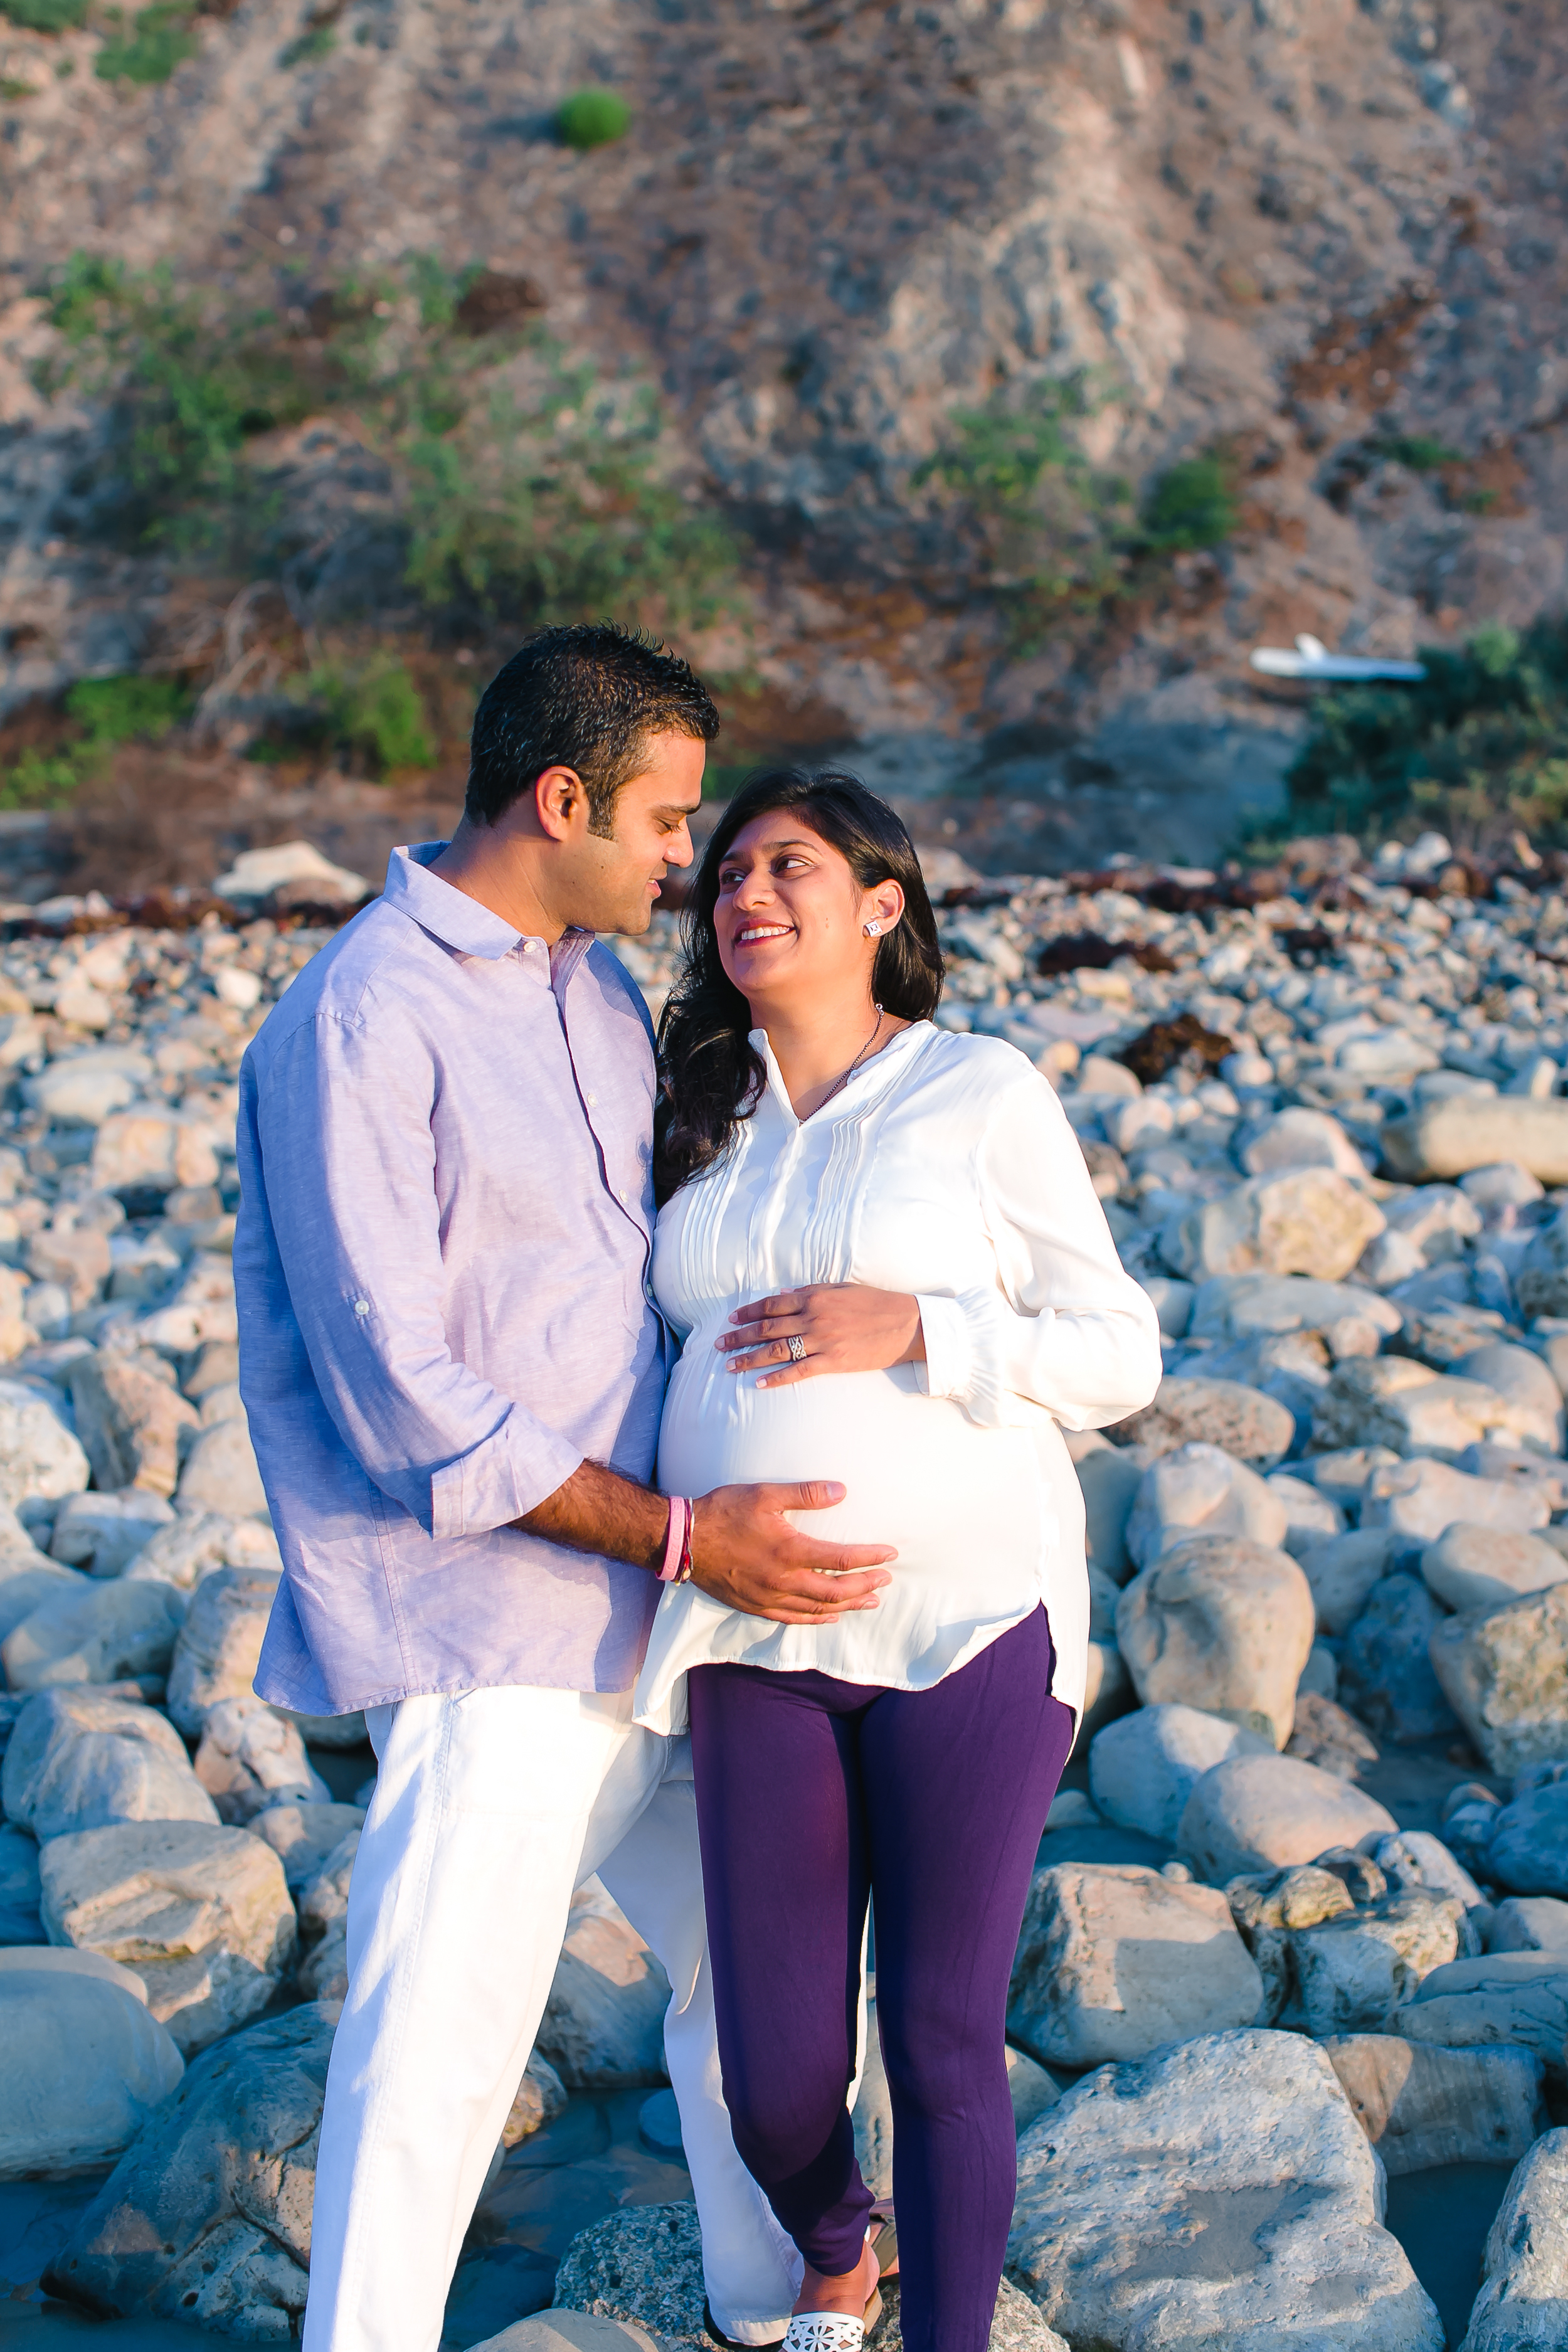 Palos Verdes Beach Maternity Portrait Photos, It's a Boy, Los Angeles Pregnancy photos, Palos Verdes, California, Love Story, New Chapter, Expecting Parents, Best of LA, Sunset maternity photographer, Baby Bump Photographer